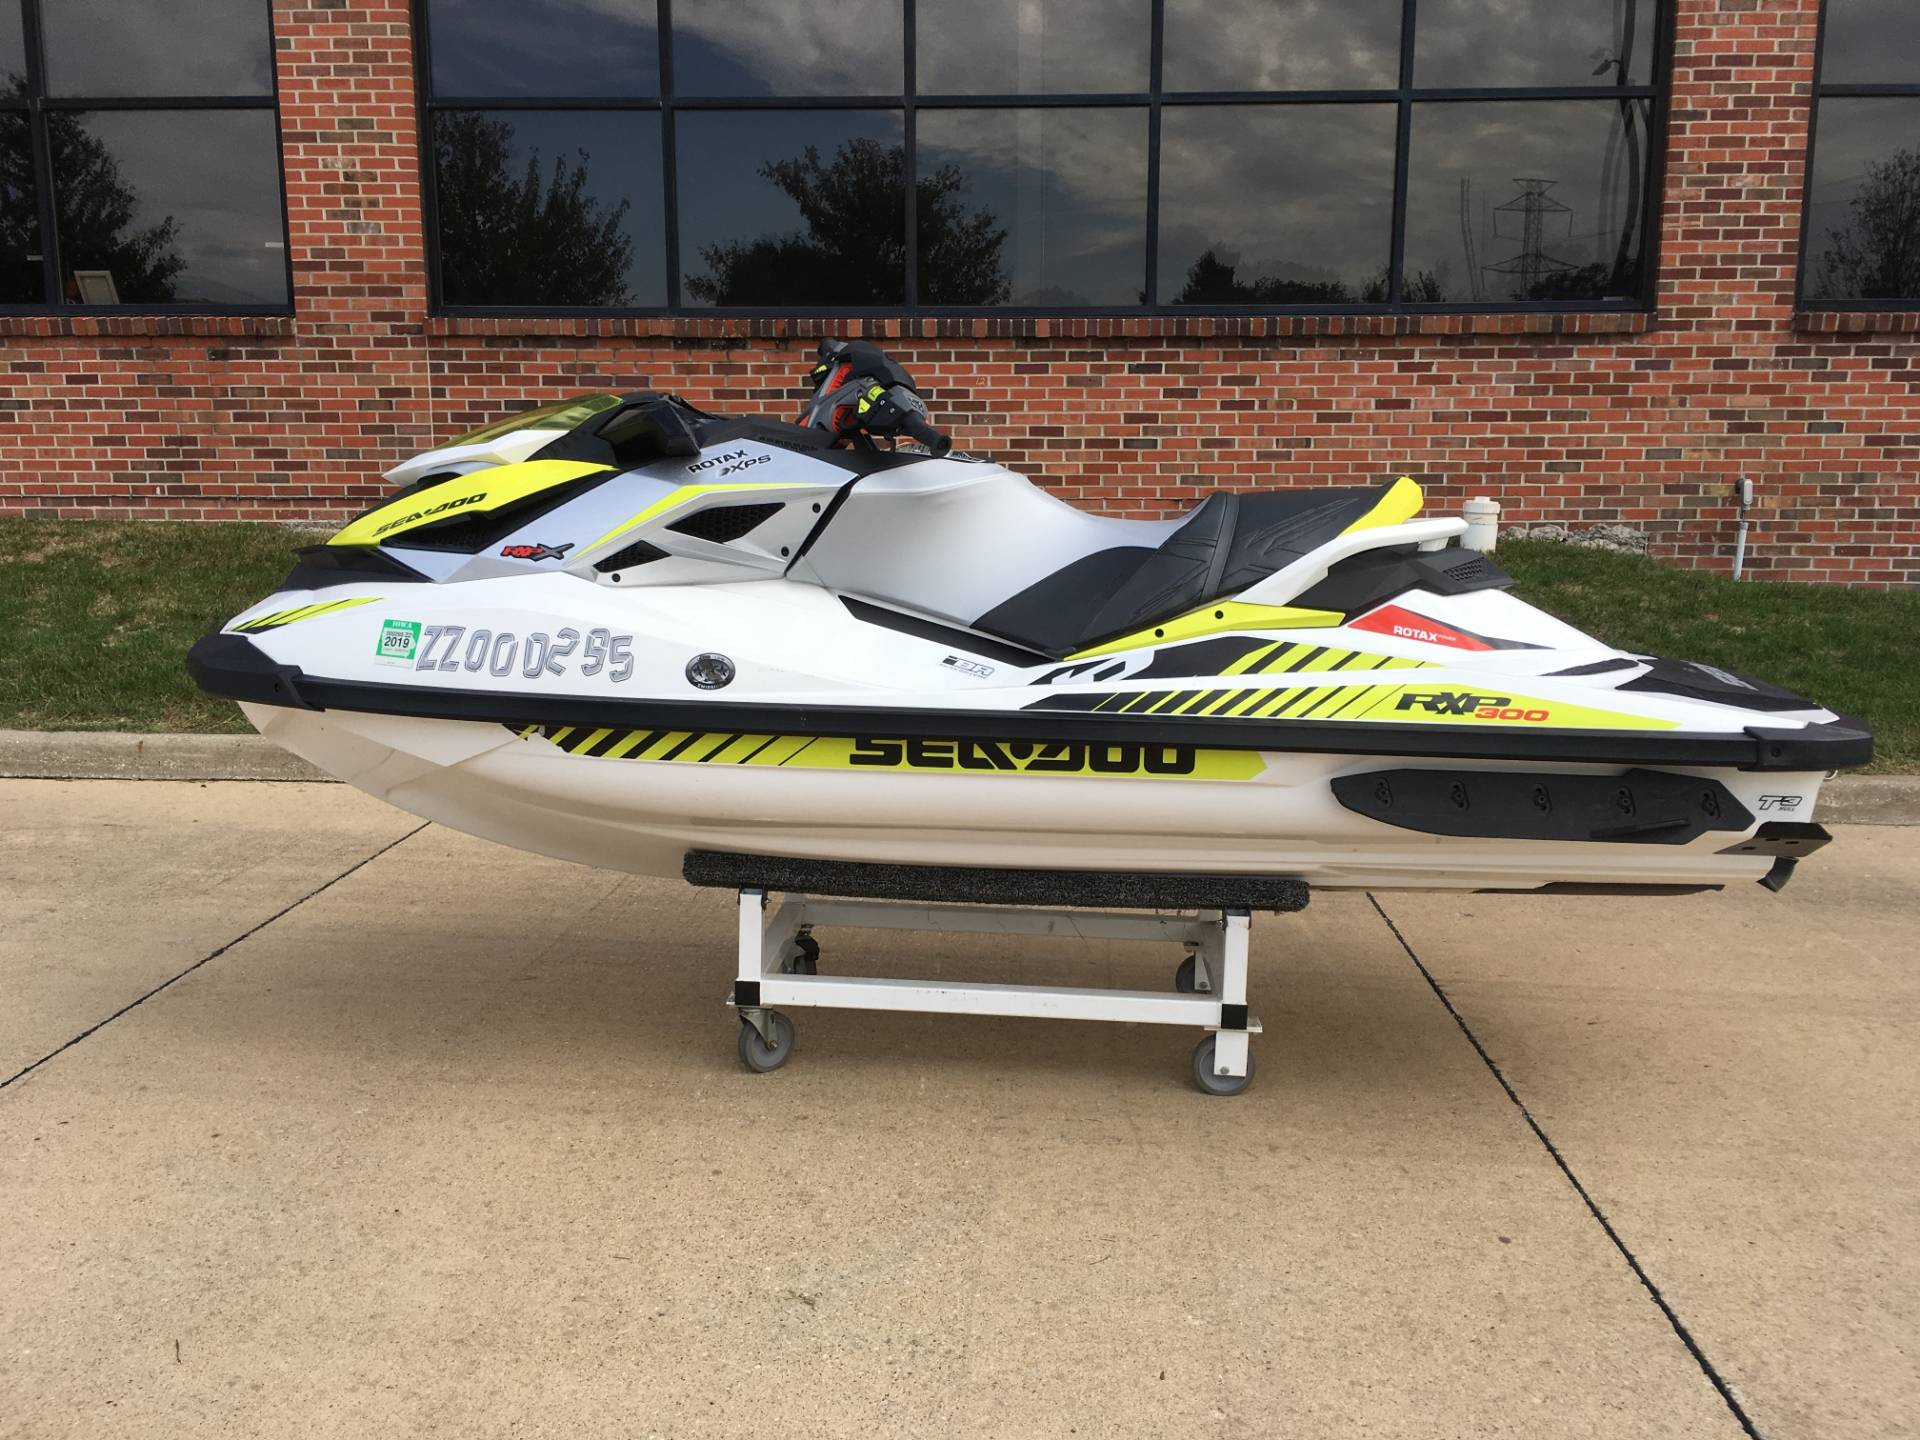 2017 Sea-Doo RXP-X 300 in Grimes, Iowa